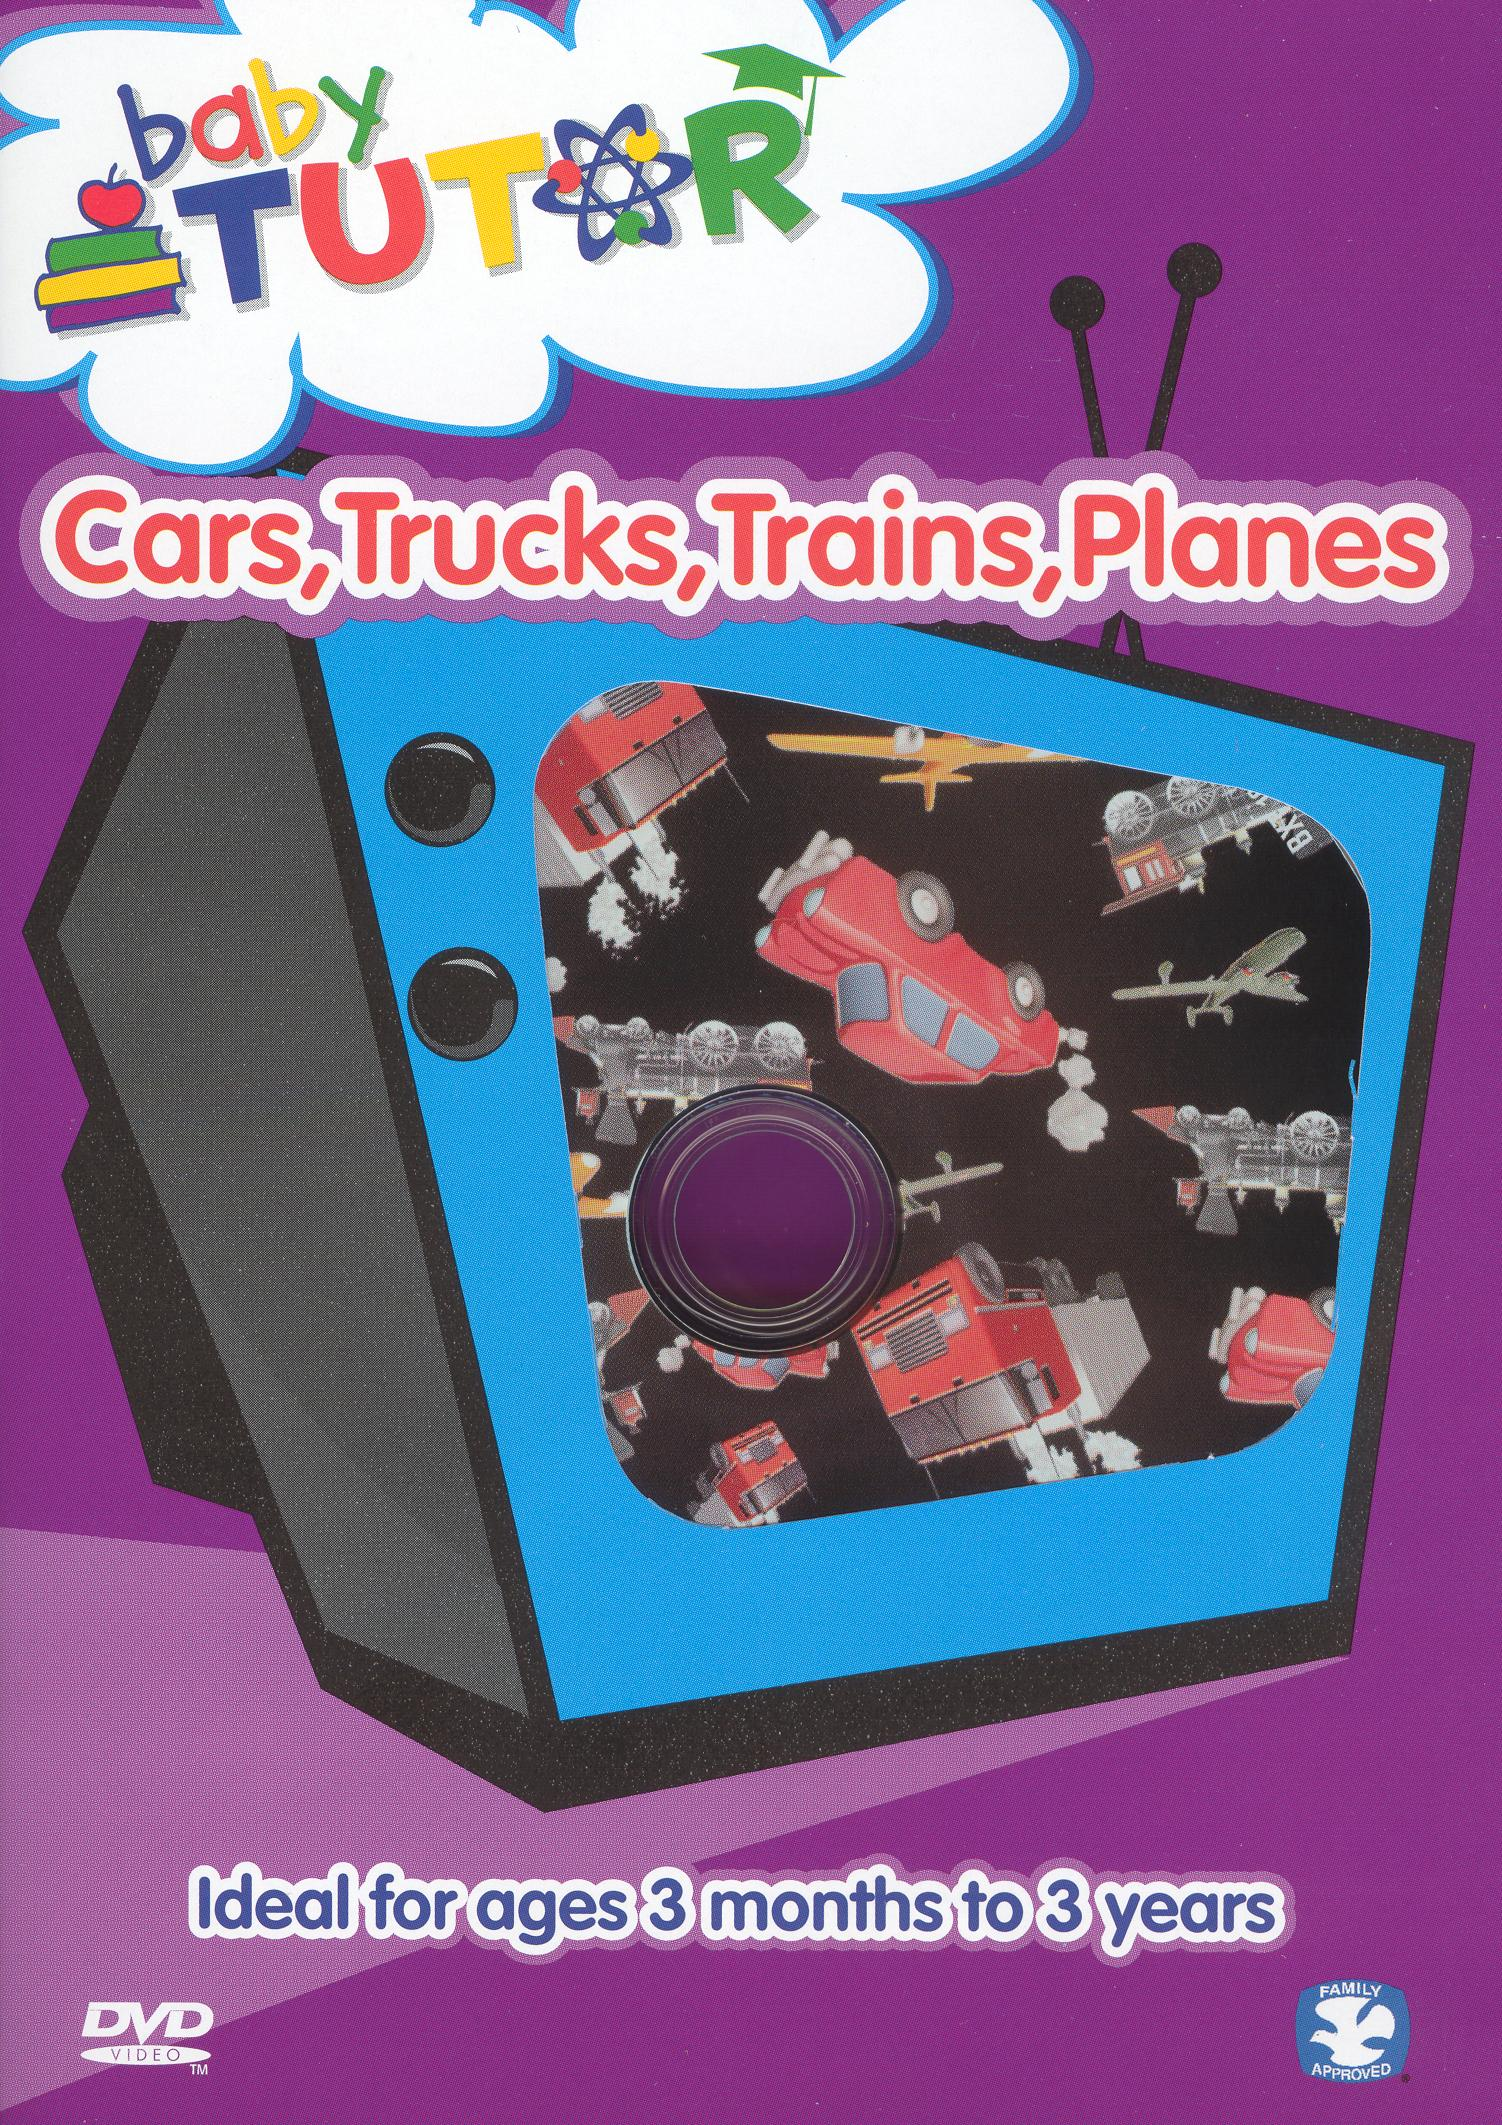 Baby Tutor: Cars, Trucks, Trains, Planes